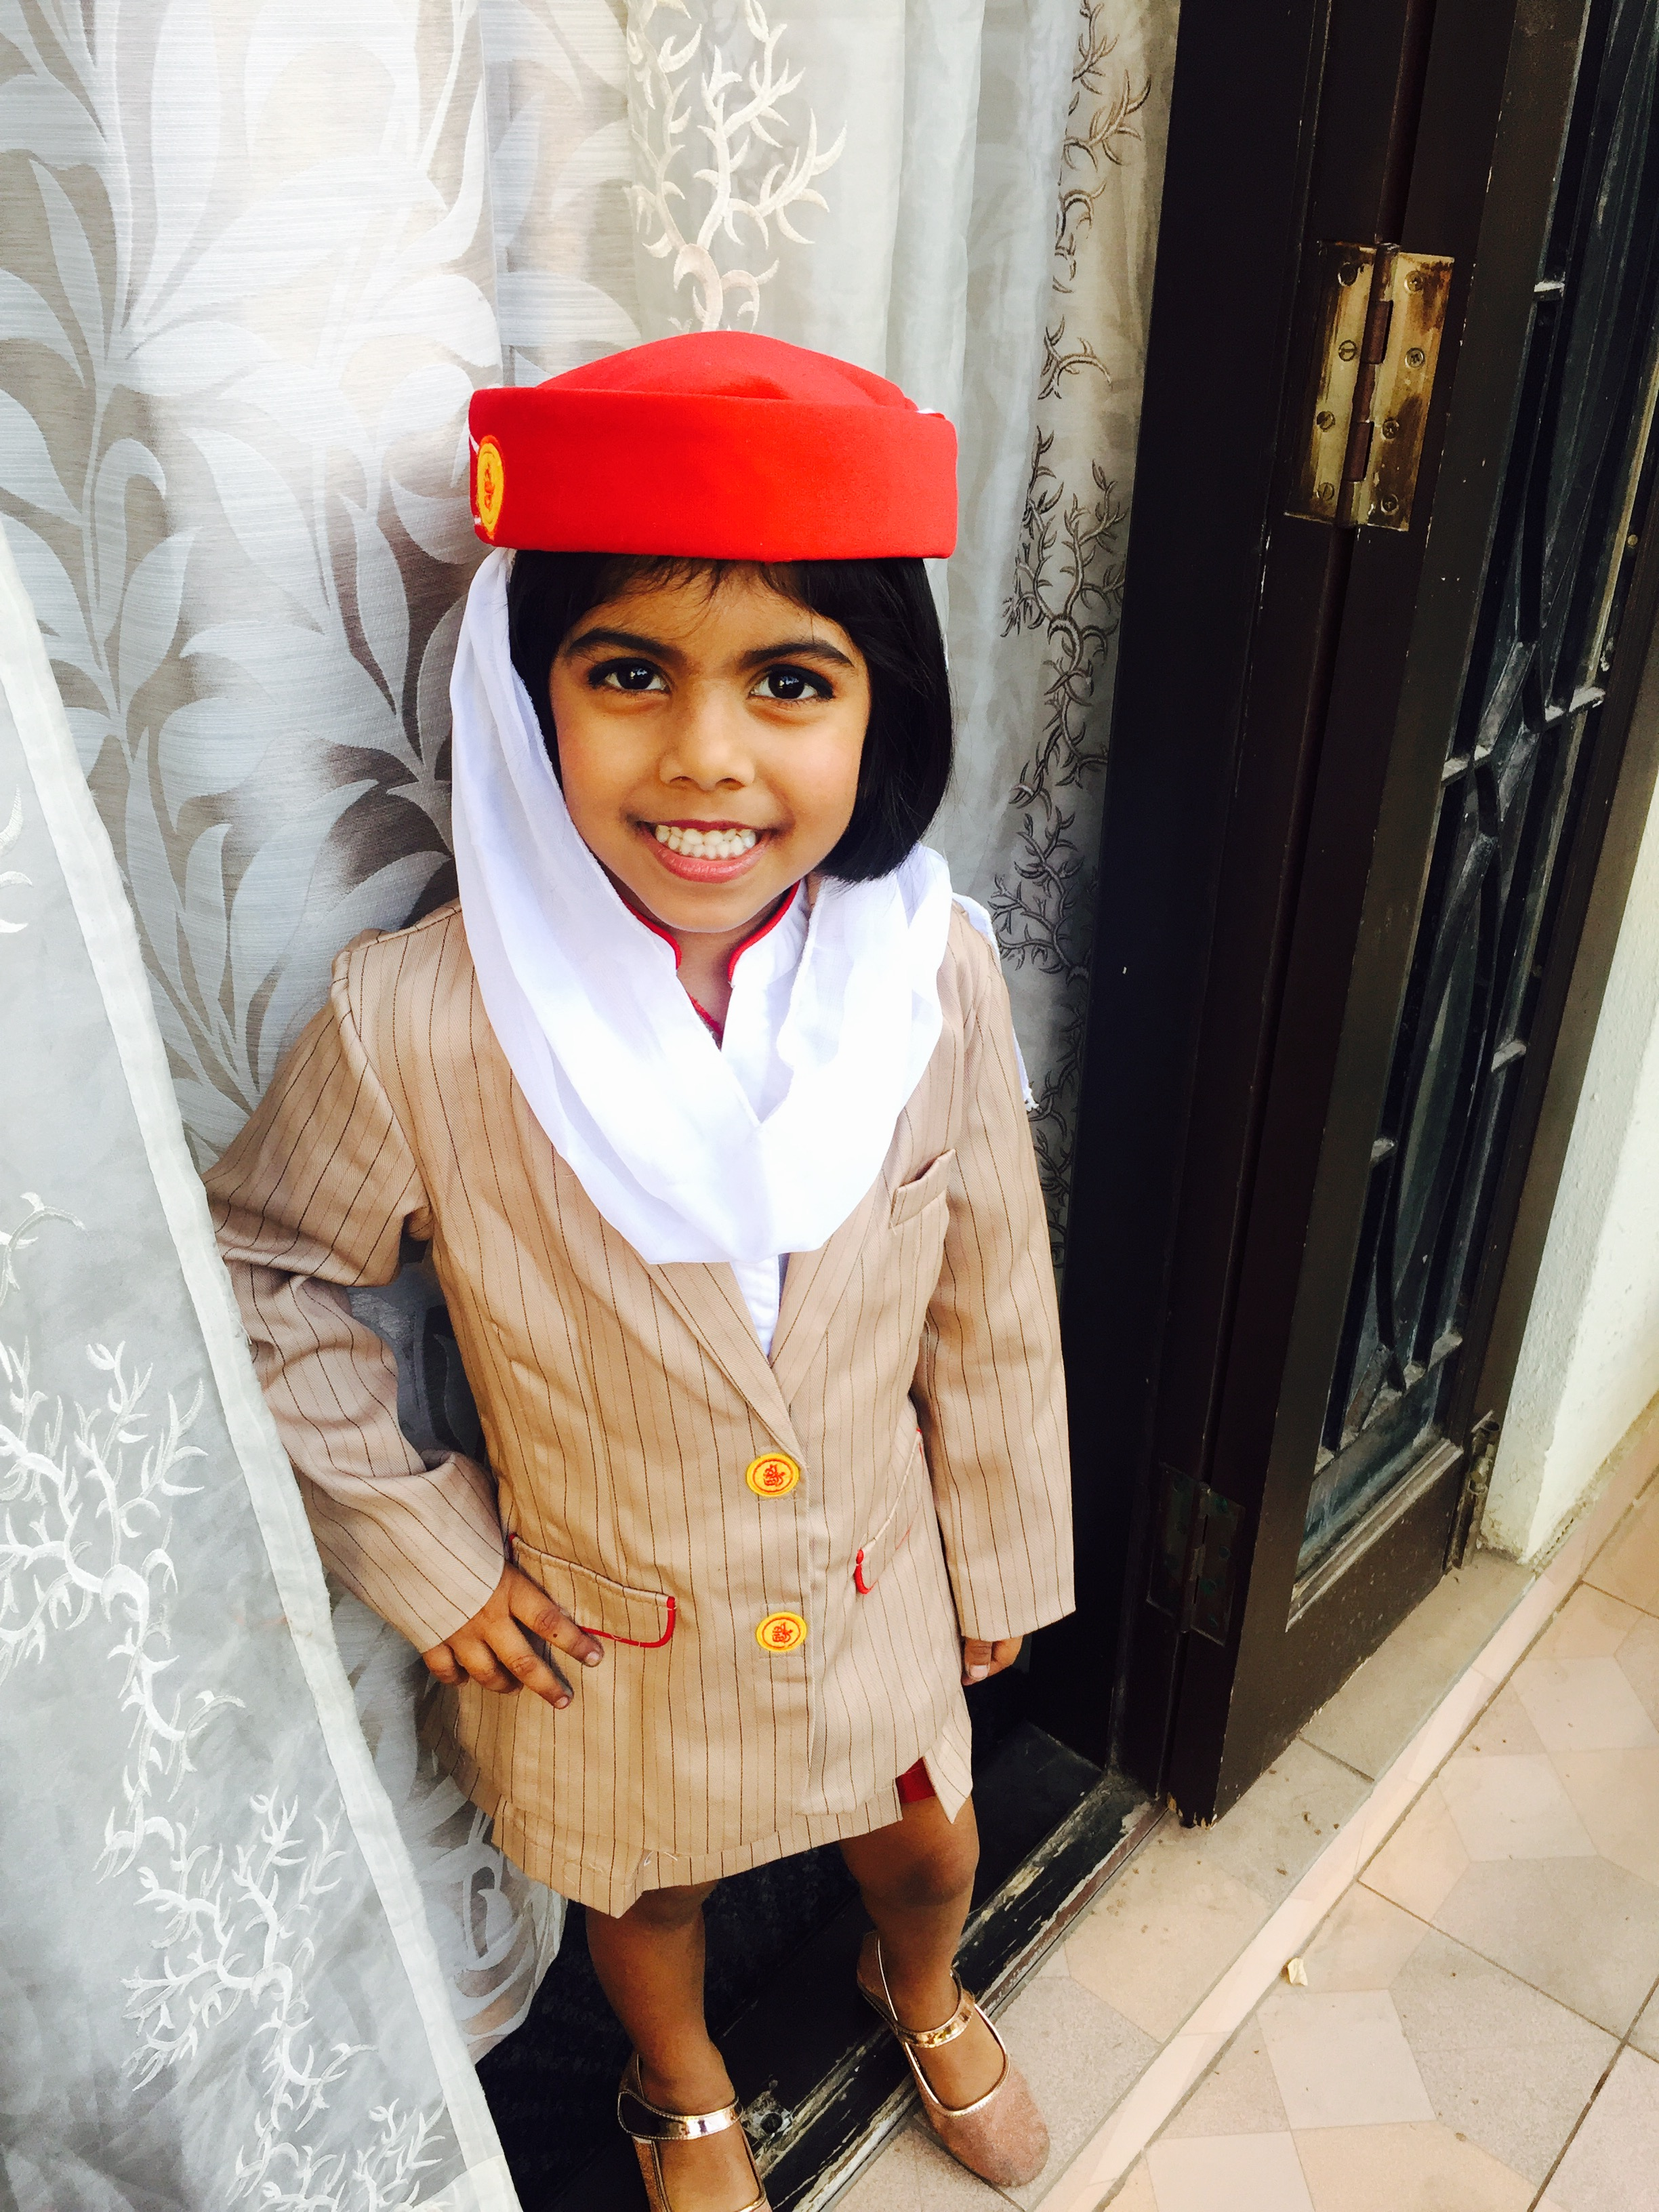 emirates cabin crew and pilot uniform for kids | mommyswallmommyswall